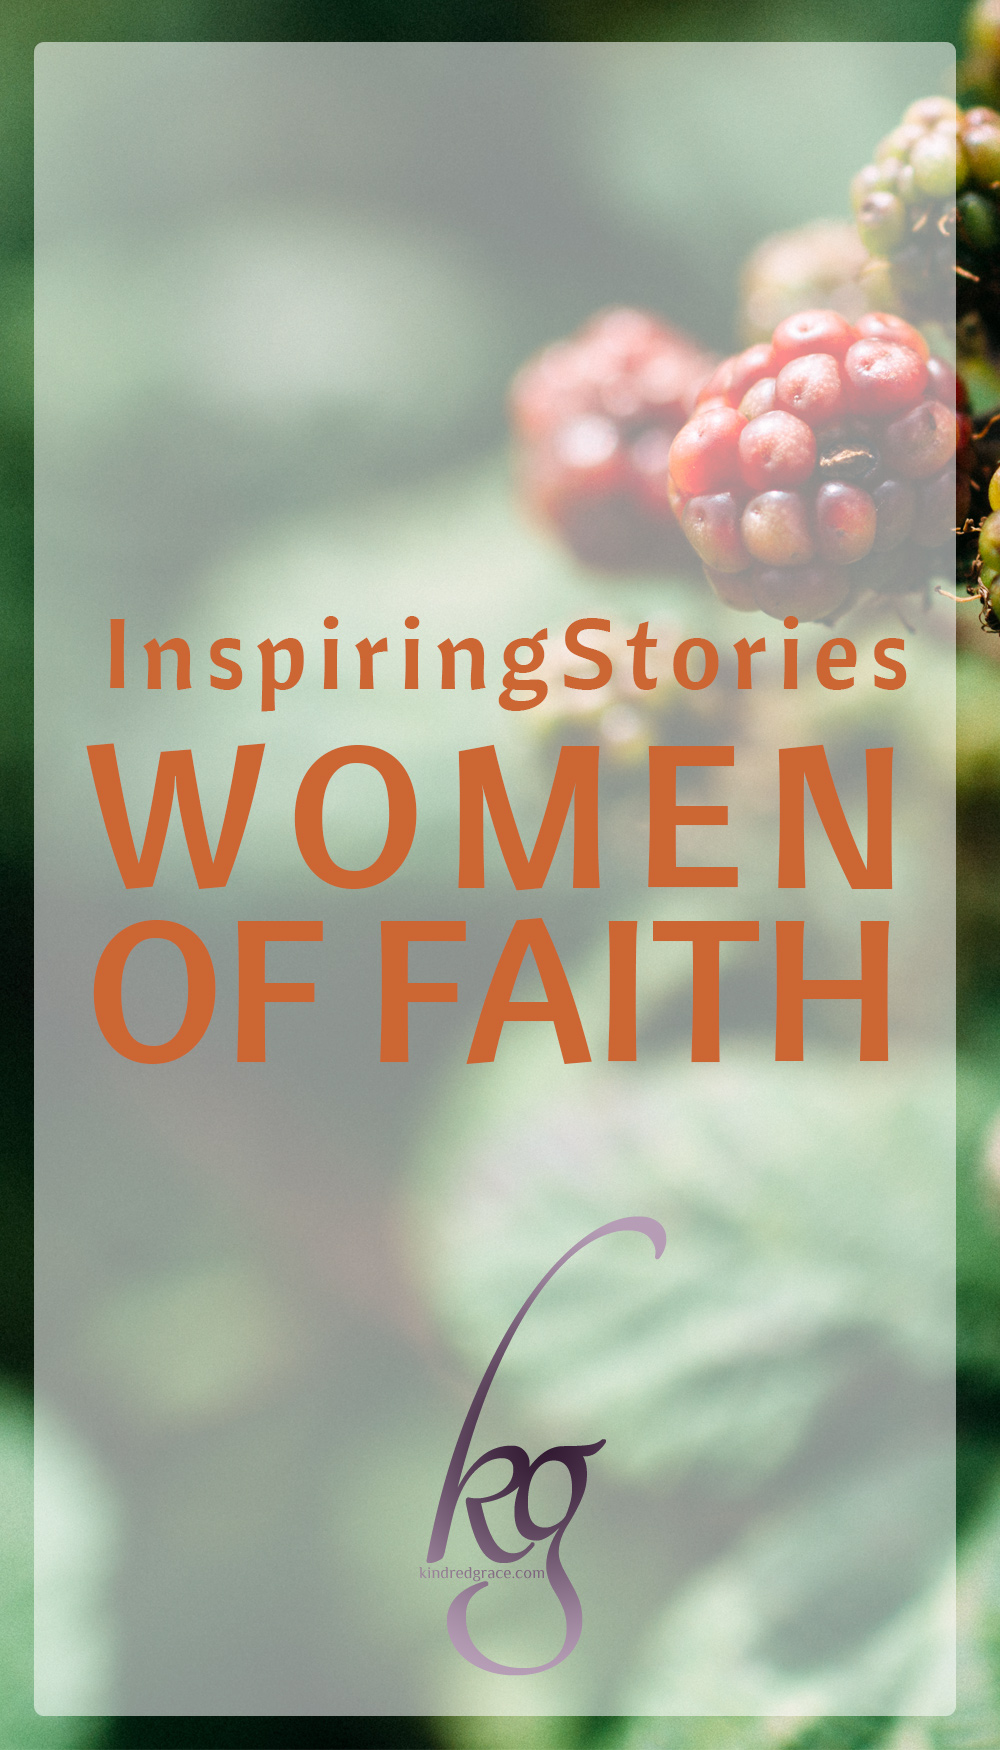 The thing I love most about women of faith is that each woman and each story is unique. Christ is revealed in different ways through their experiences and responses.  via @KindredGrace